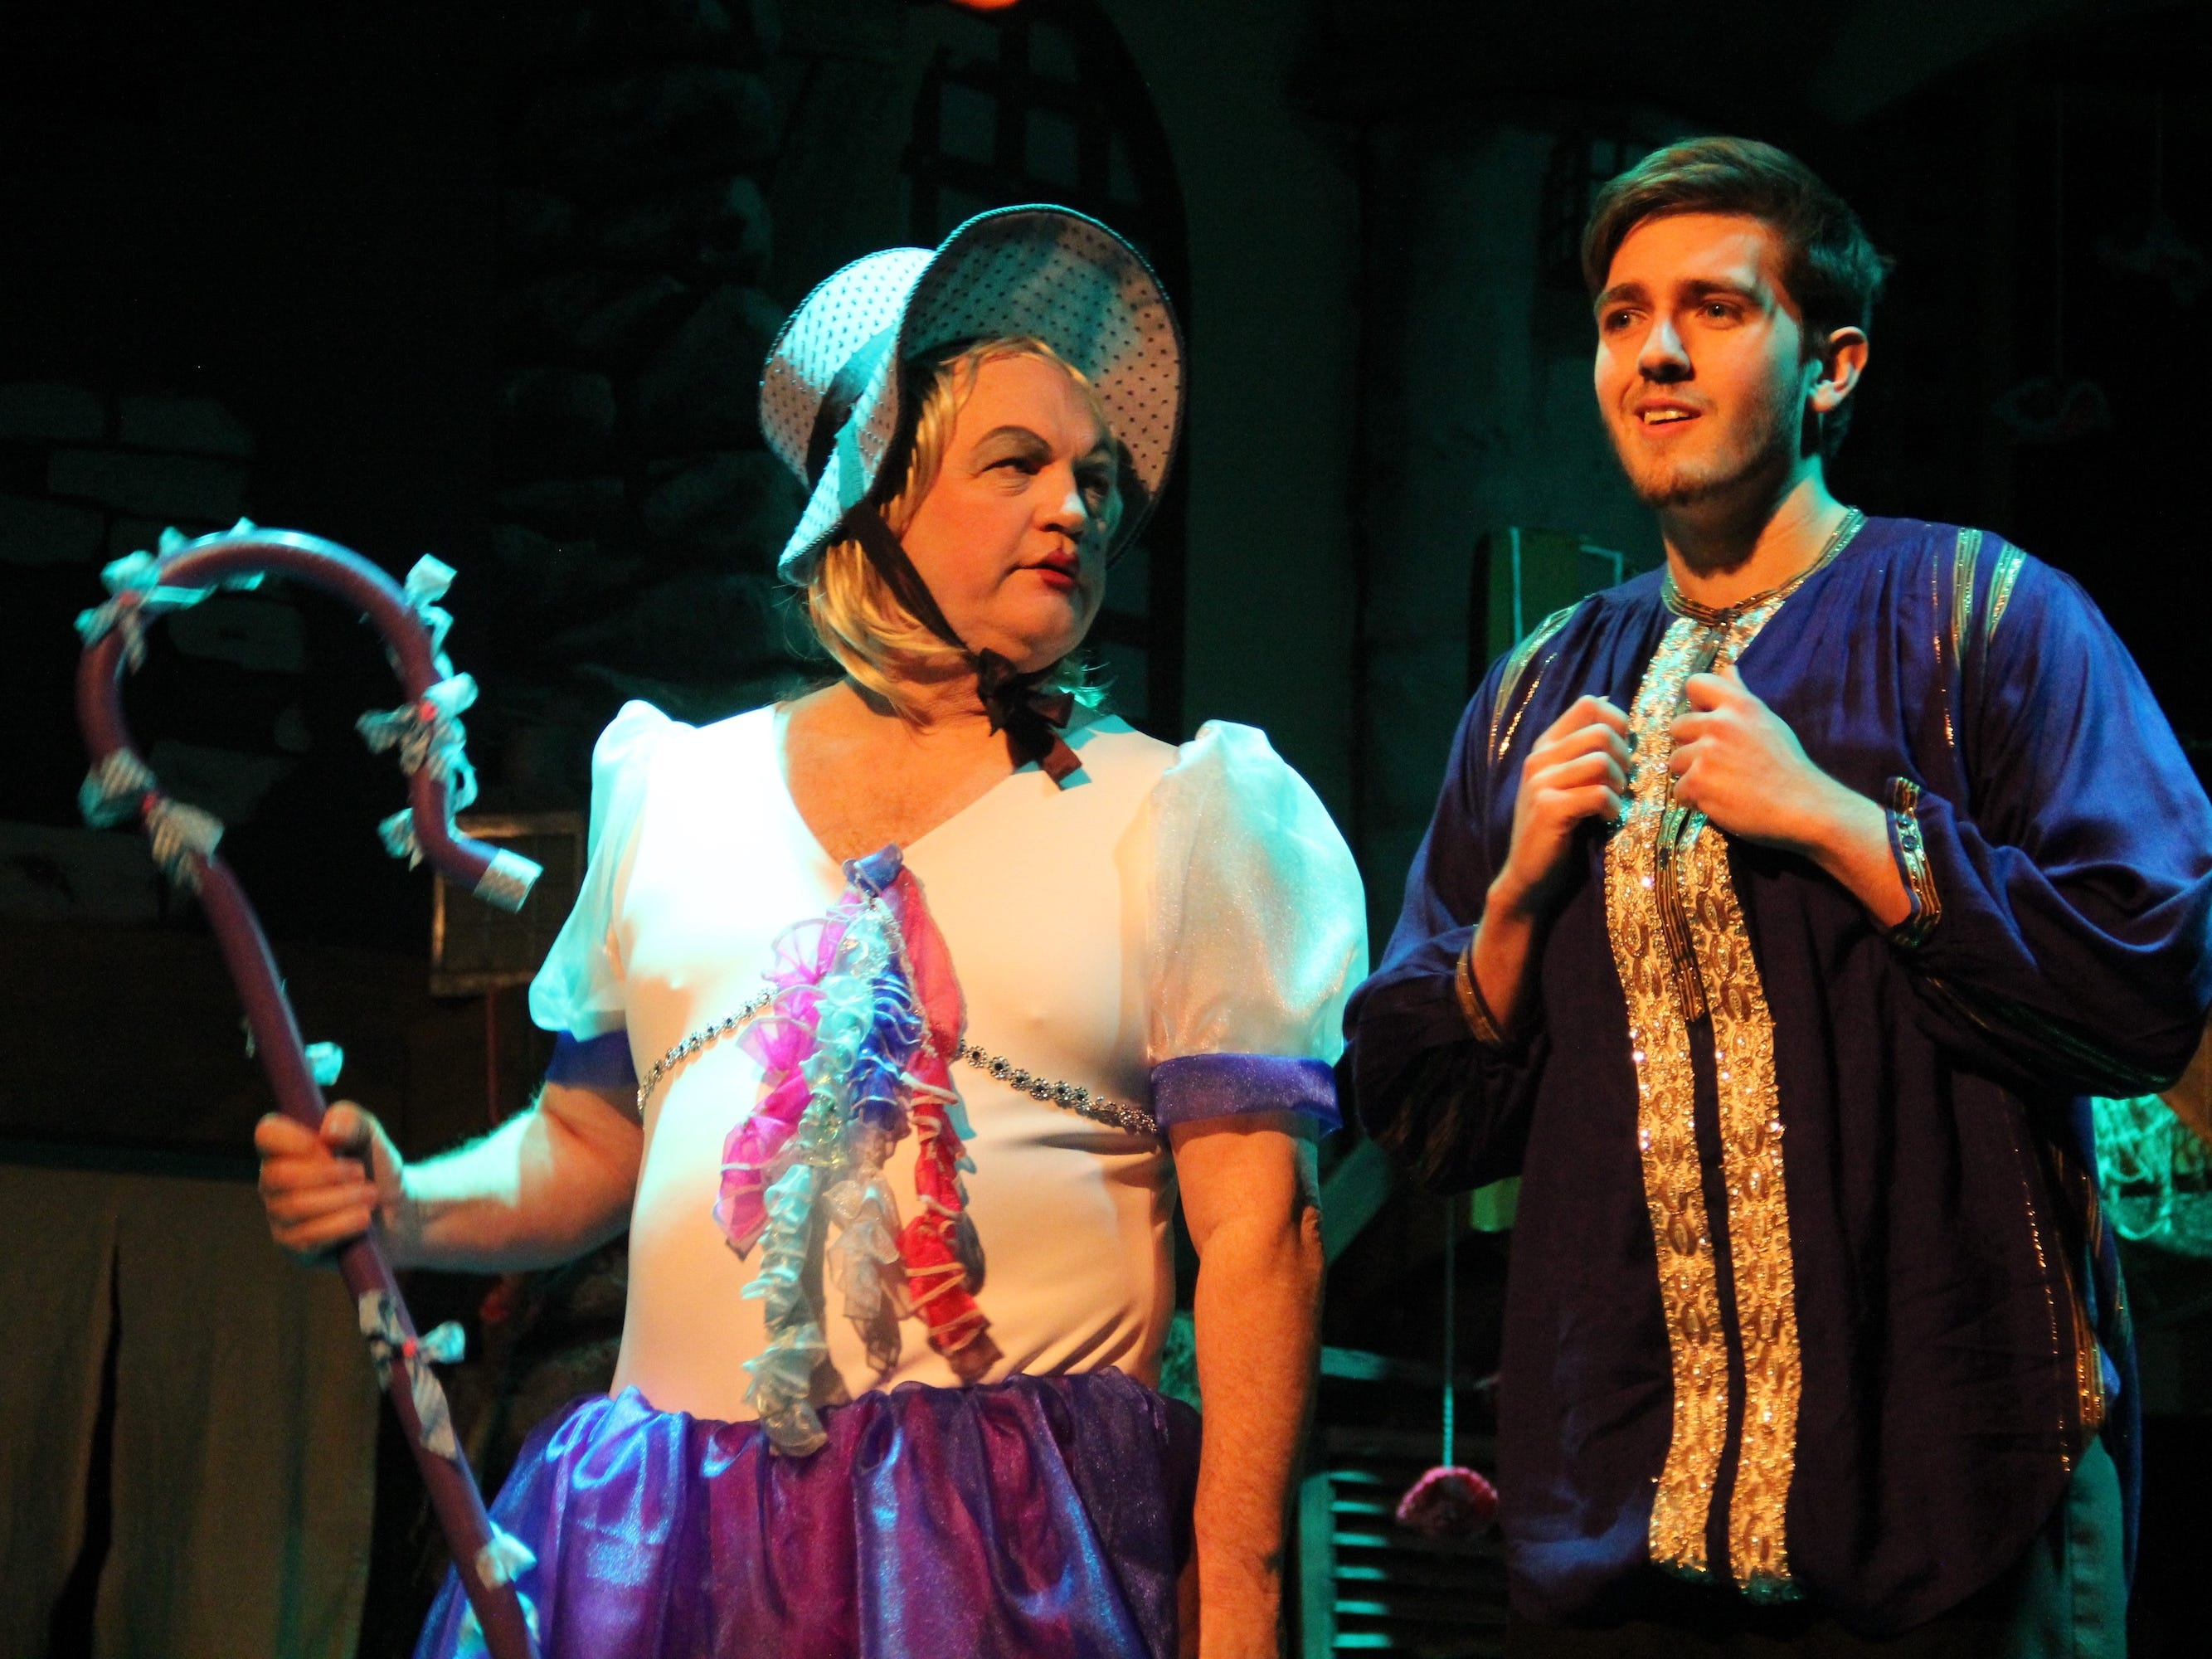 'Mungo!' and 'Cinderella' on Ventura County stages